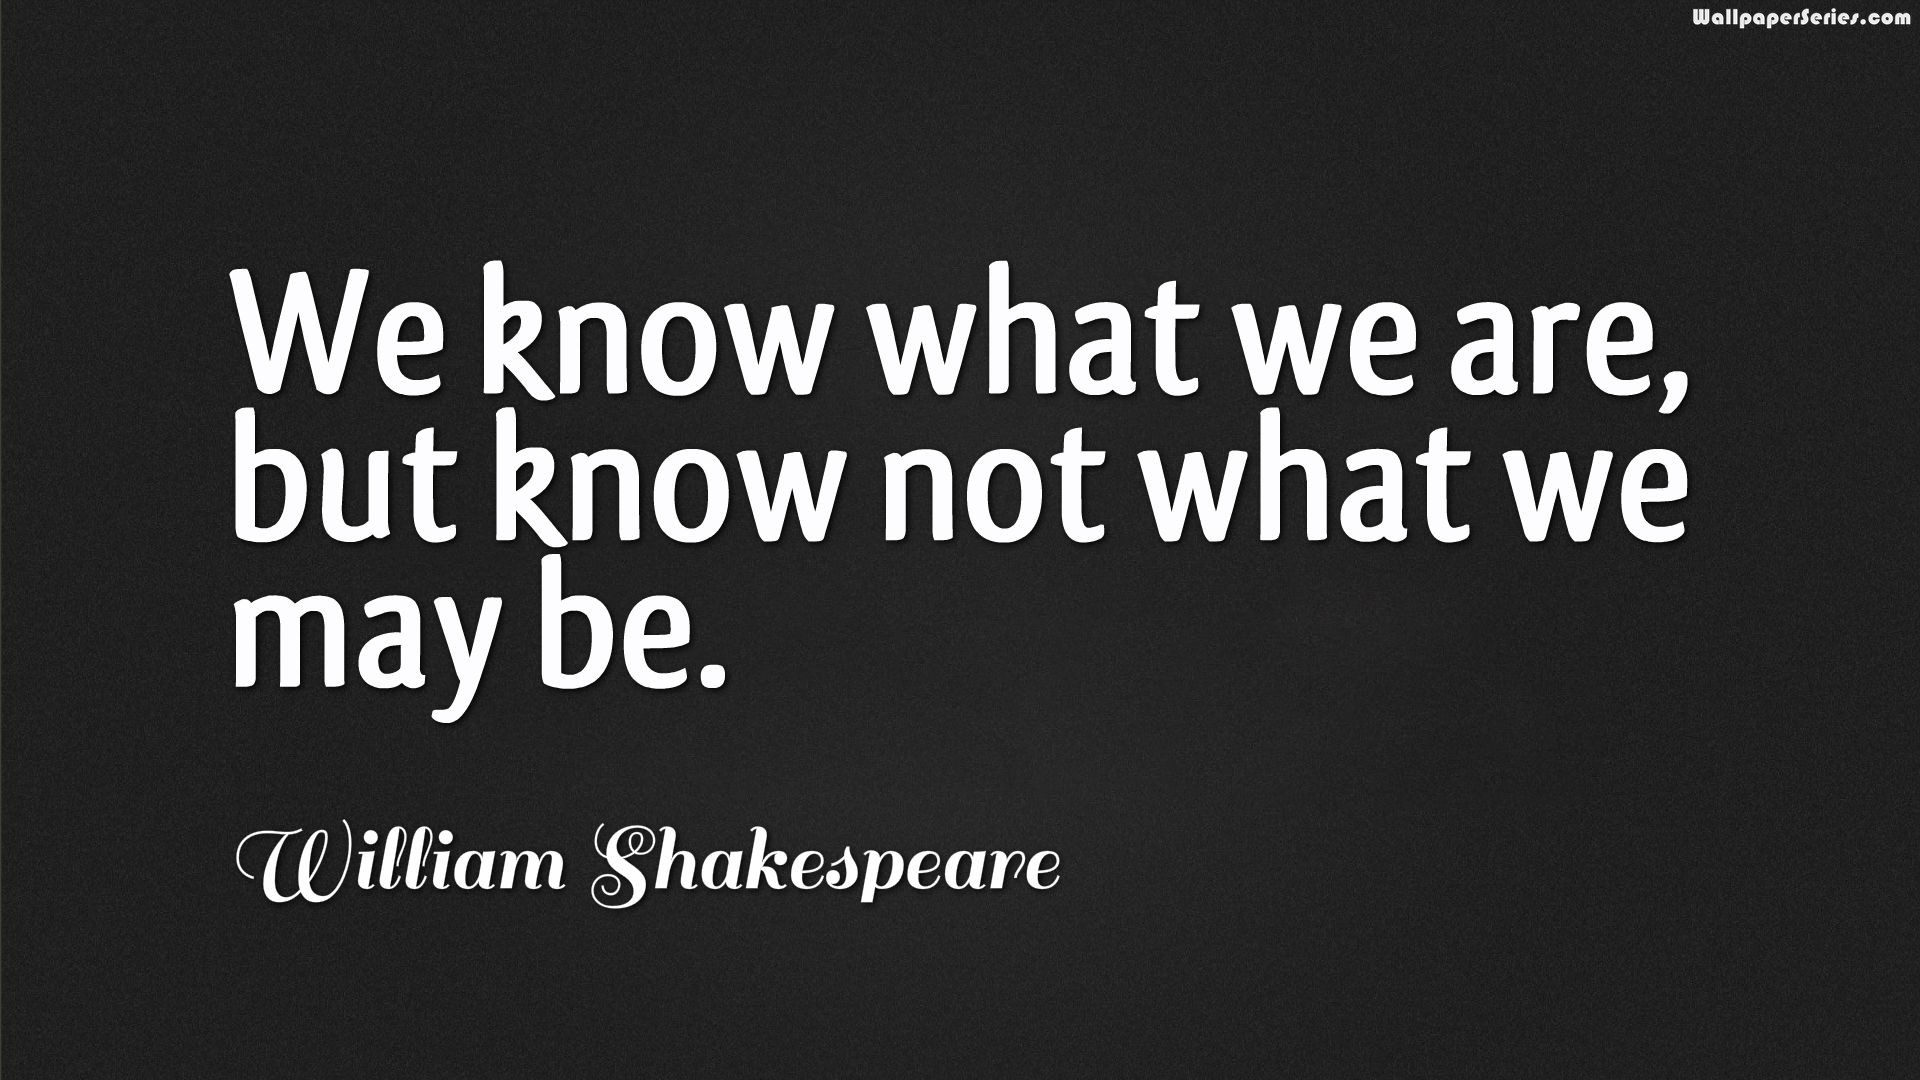 William Shakespeare Quotes Wallpapers HD Backgrounds Download 1920x1080